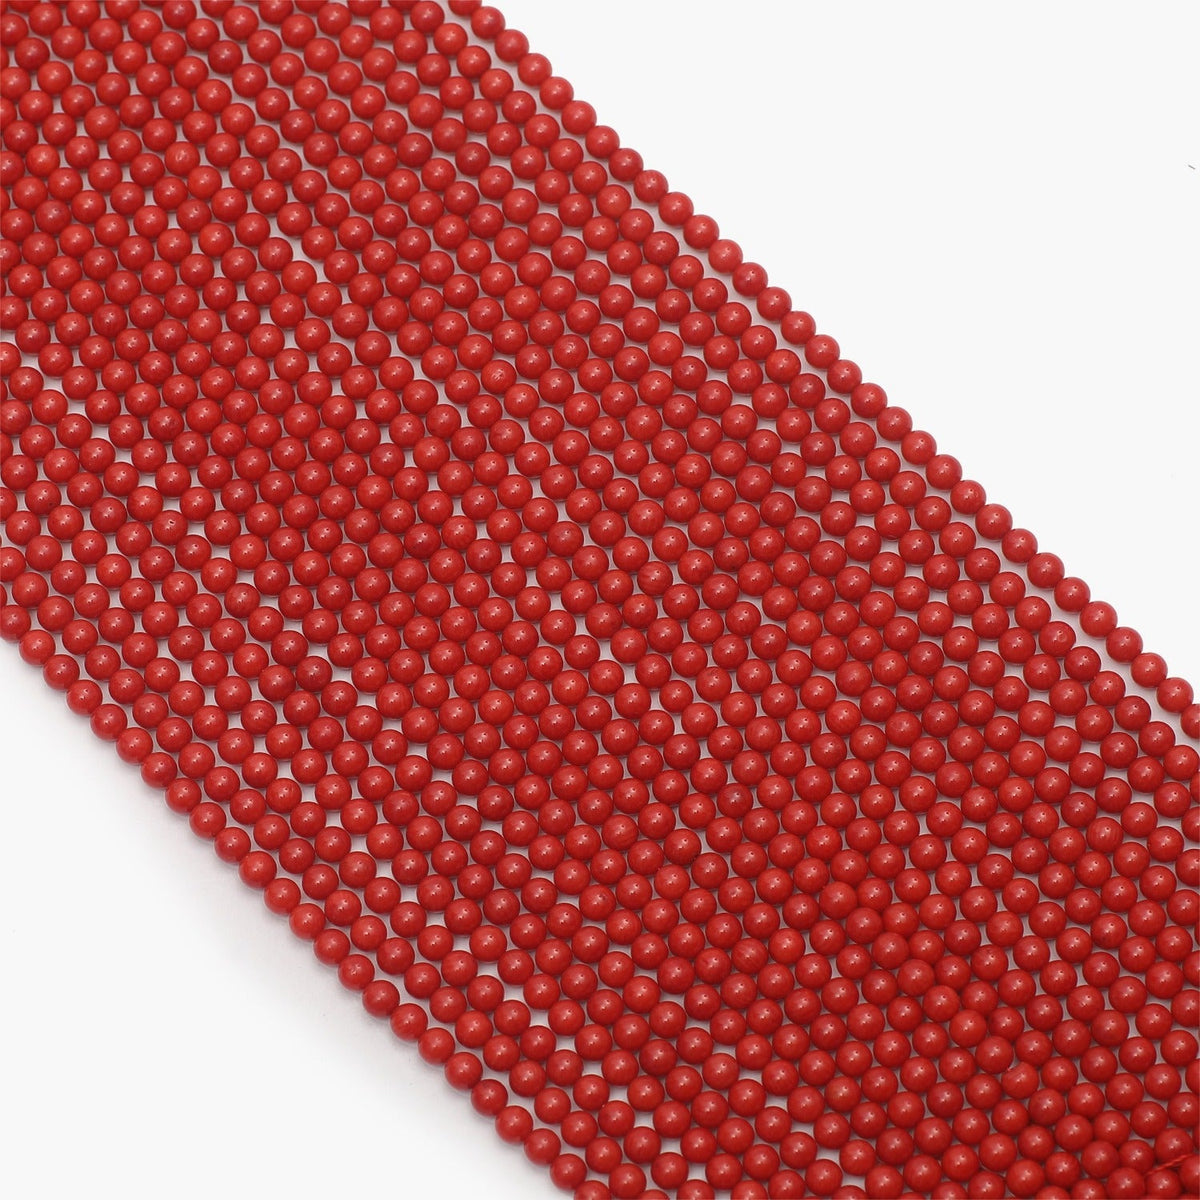 Taiwan Red Coral Semi Precious Gemstone Beads 5mm- Sold Per Strand